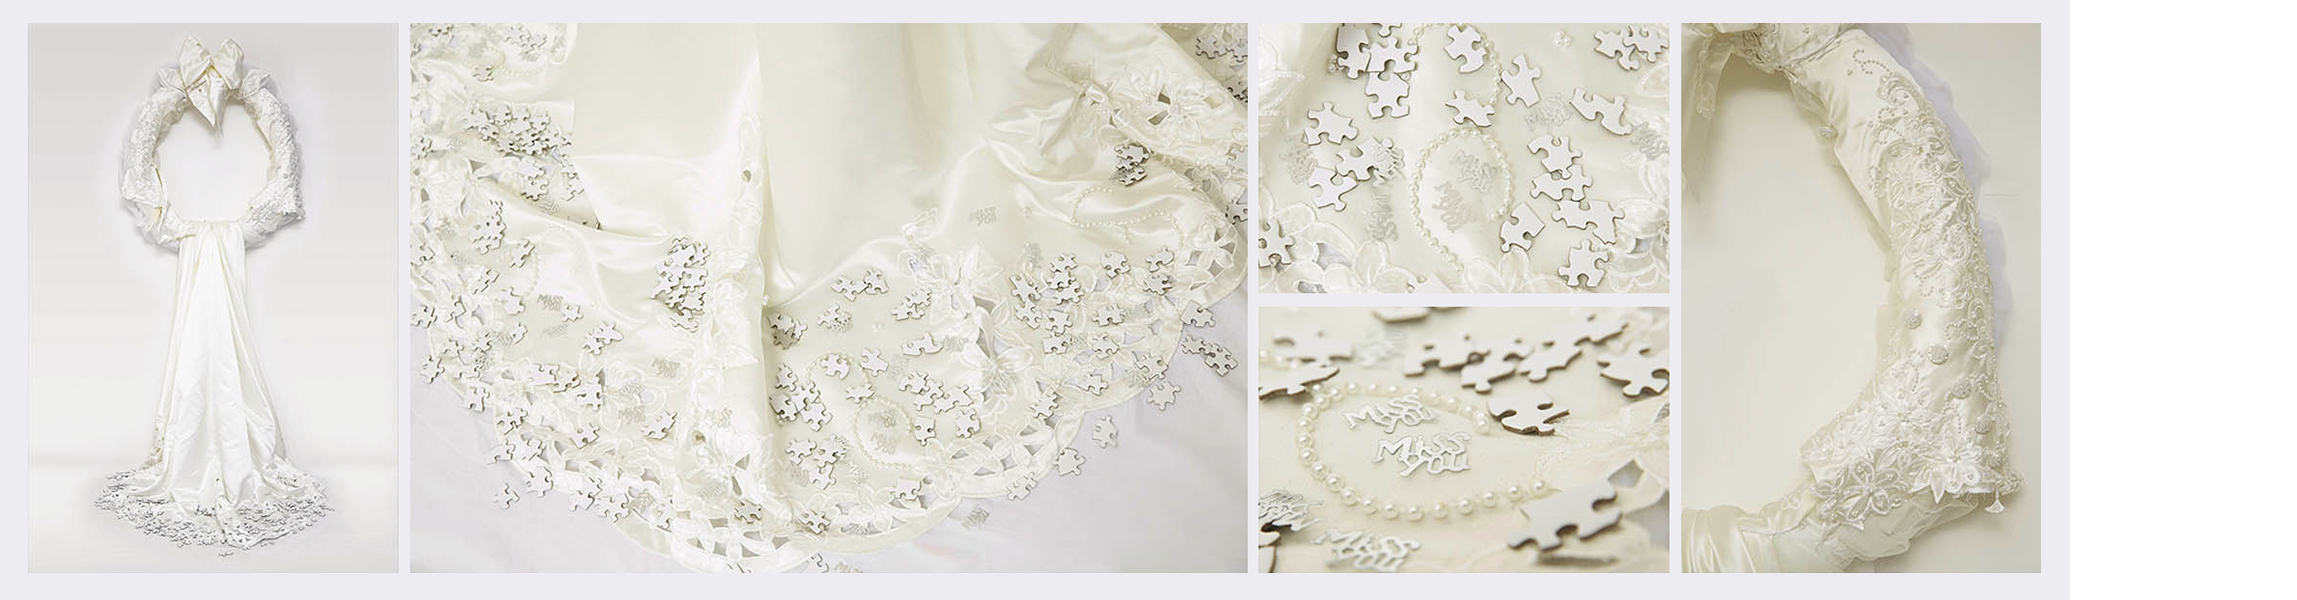 Bits & Pieces  (2015)   (186cm x 75cm)   Deconstructed wedding dress  /  blank jigsaw pieces  /  padded hoop.